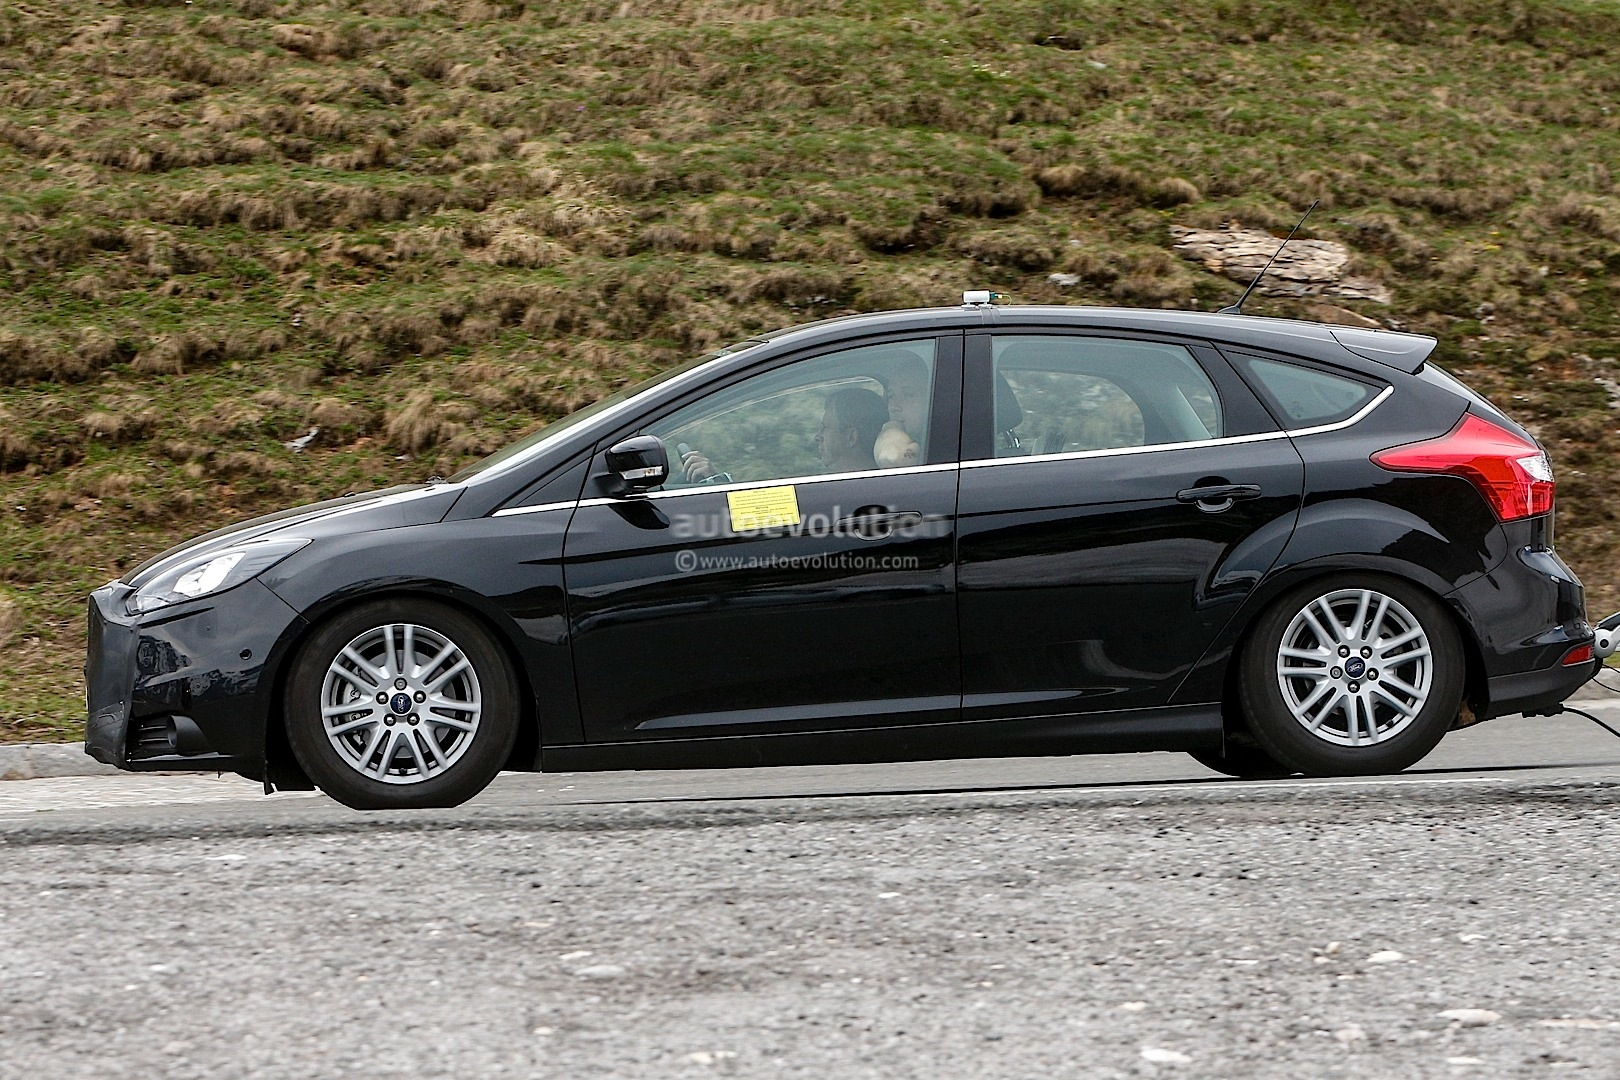 spyshots 2014 ford focus facelift autoevolution. Black Bedroom Furniture Sets. Home Design Ideas